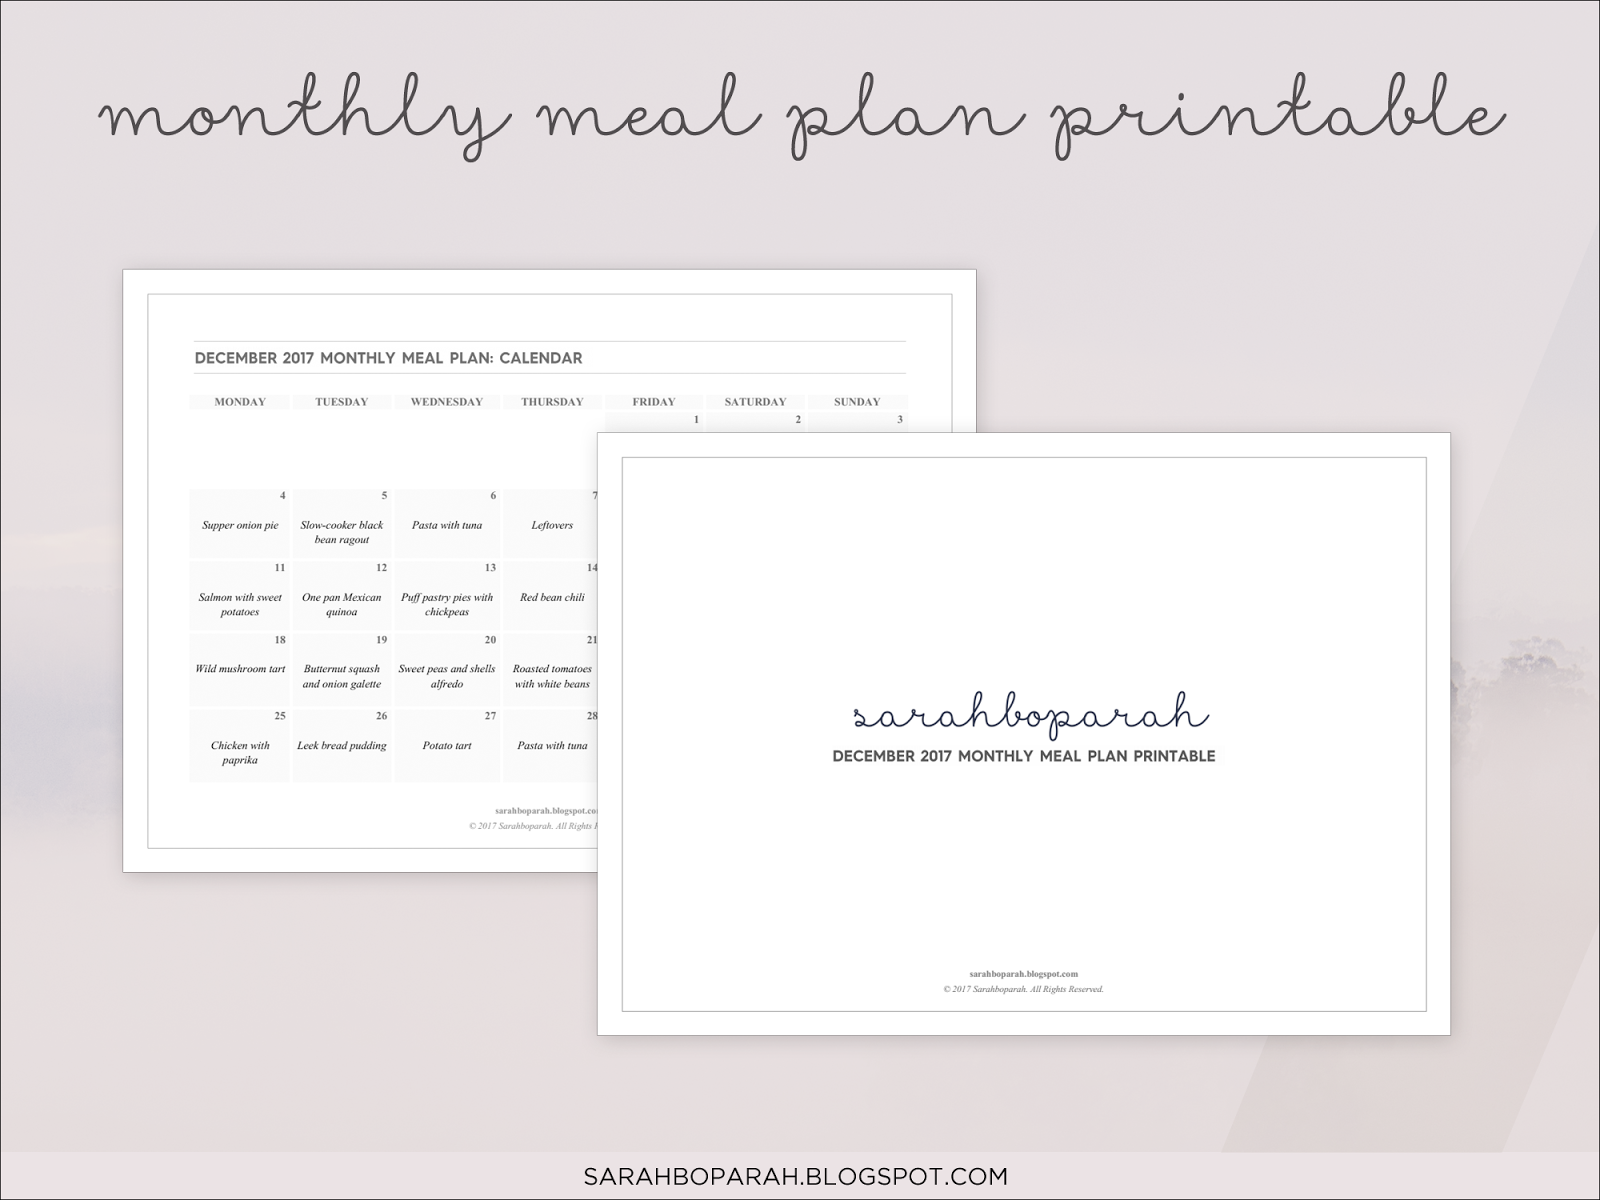 December 2017 Monthly Meal Plan Printable Calendar from Sarahboparah.